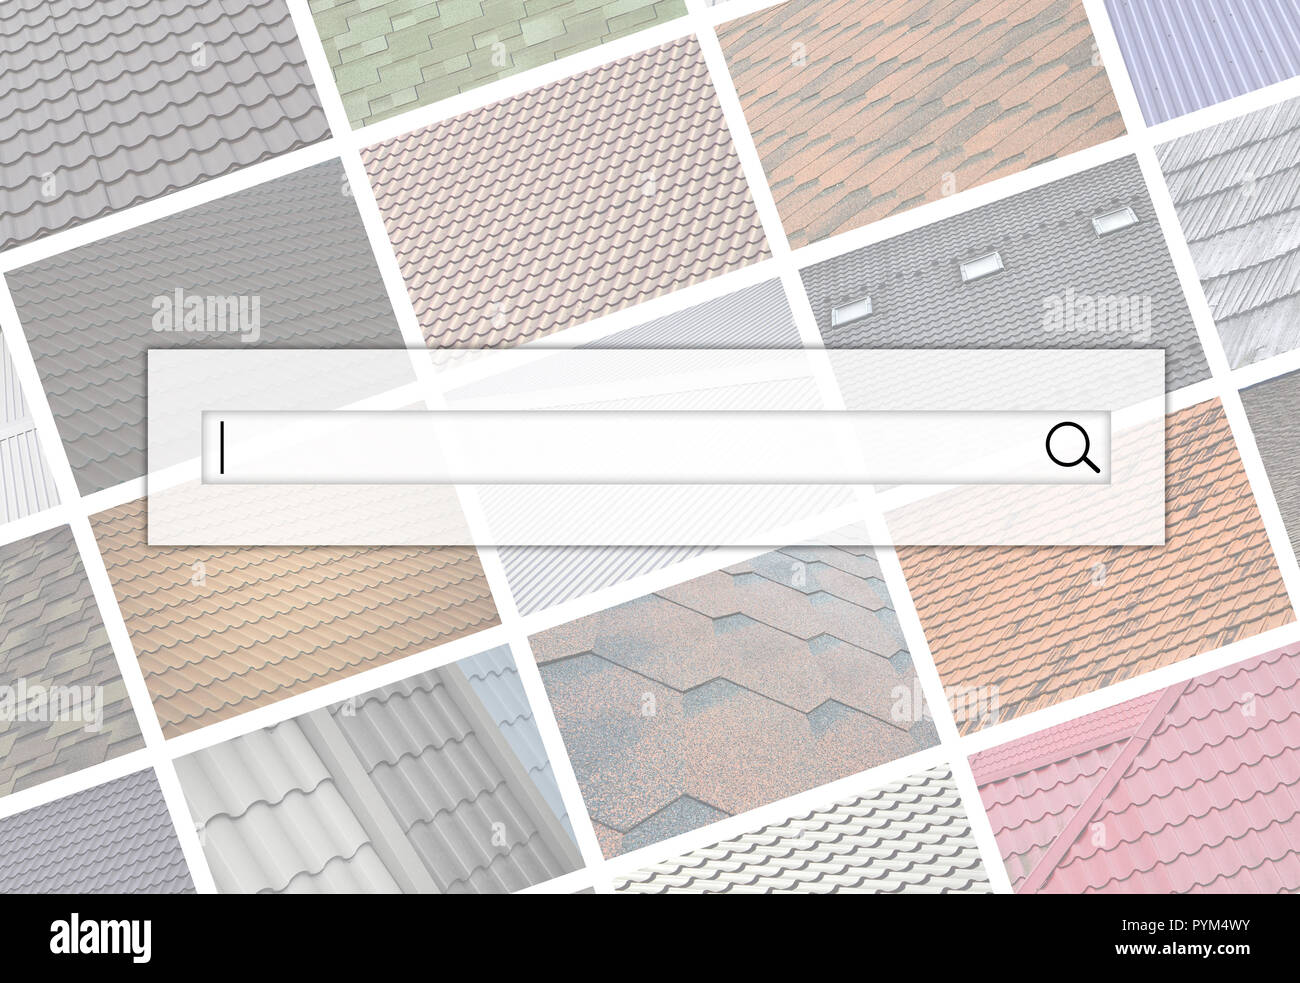 Visualization of the search bar on the background of a collage of many pictures with fragments of various types of roofing. Set of images with roofs - Stock Image